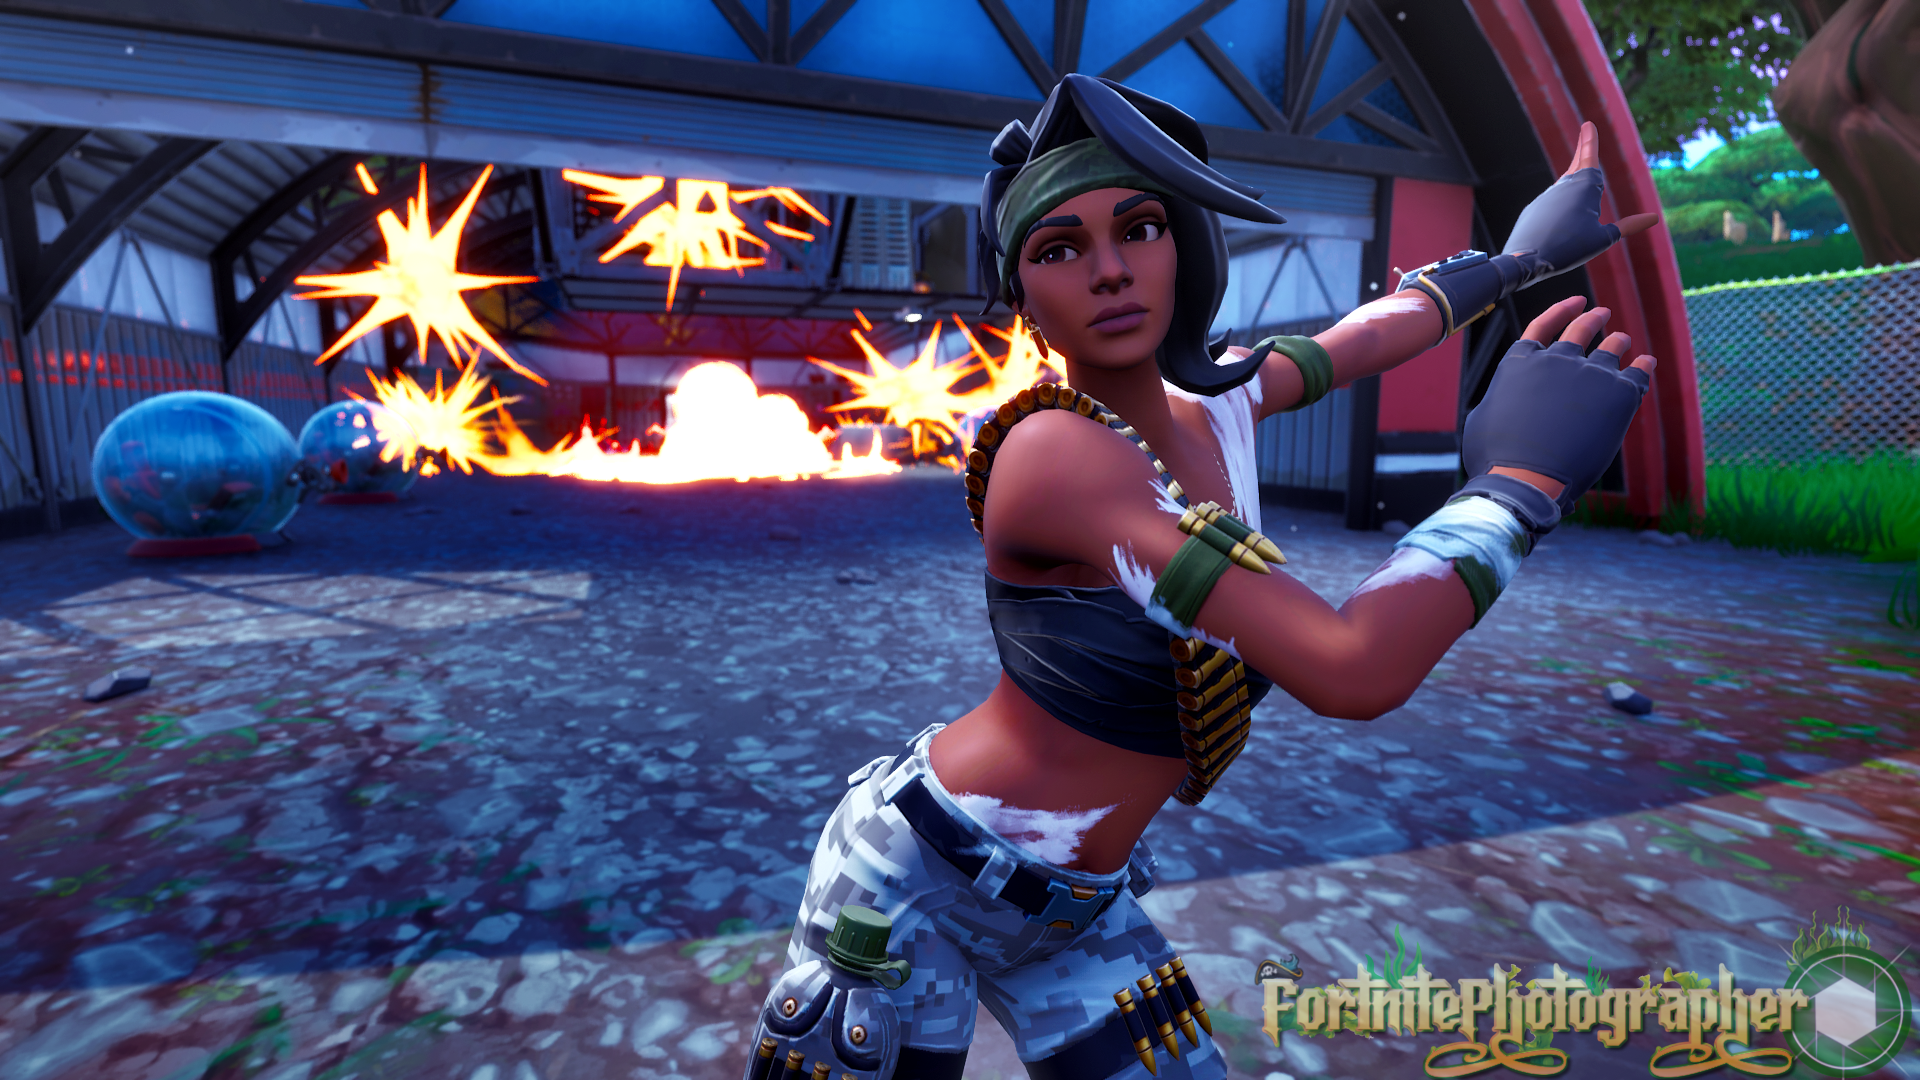 The Hunt Is On We Are Now 100 Twitter Fortnite Photographer Just Hit 100 Followers Thank You All So Much Bandolette Set 02 1 4 Fnphootographer On